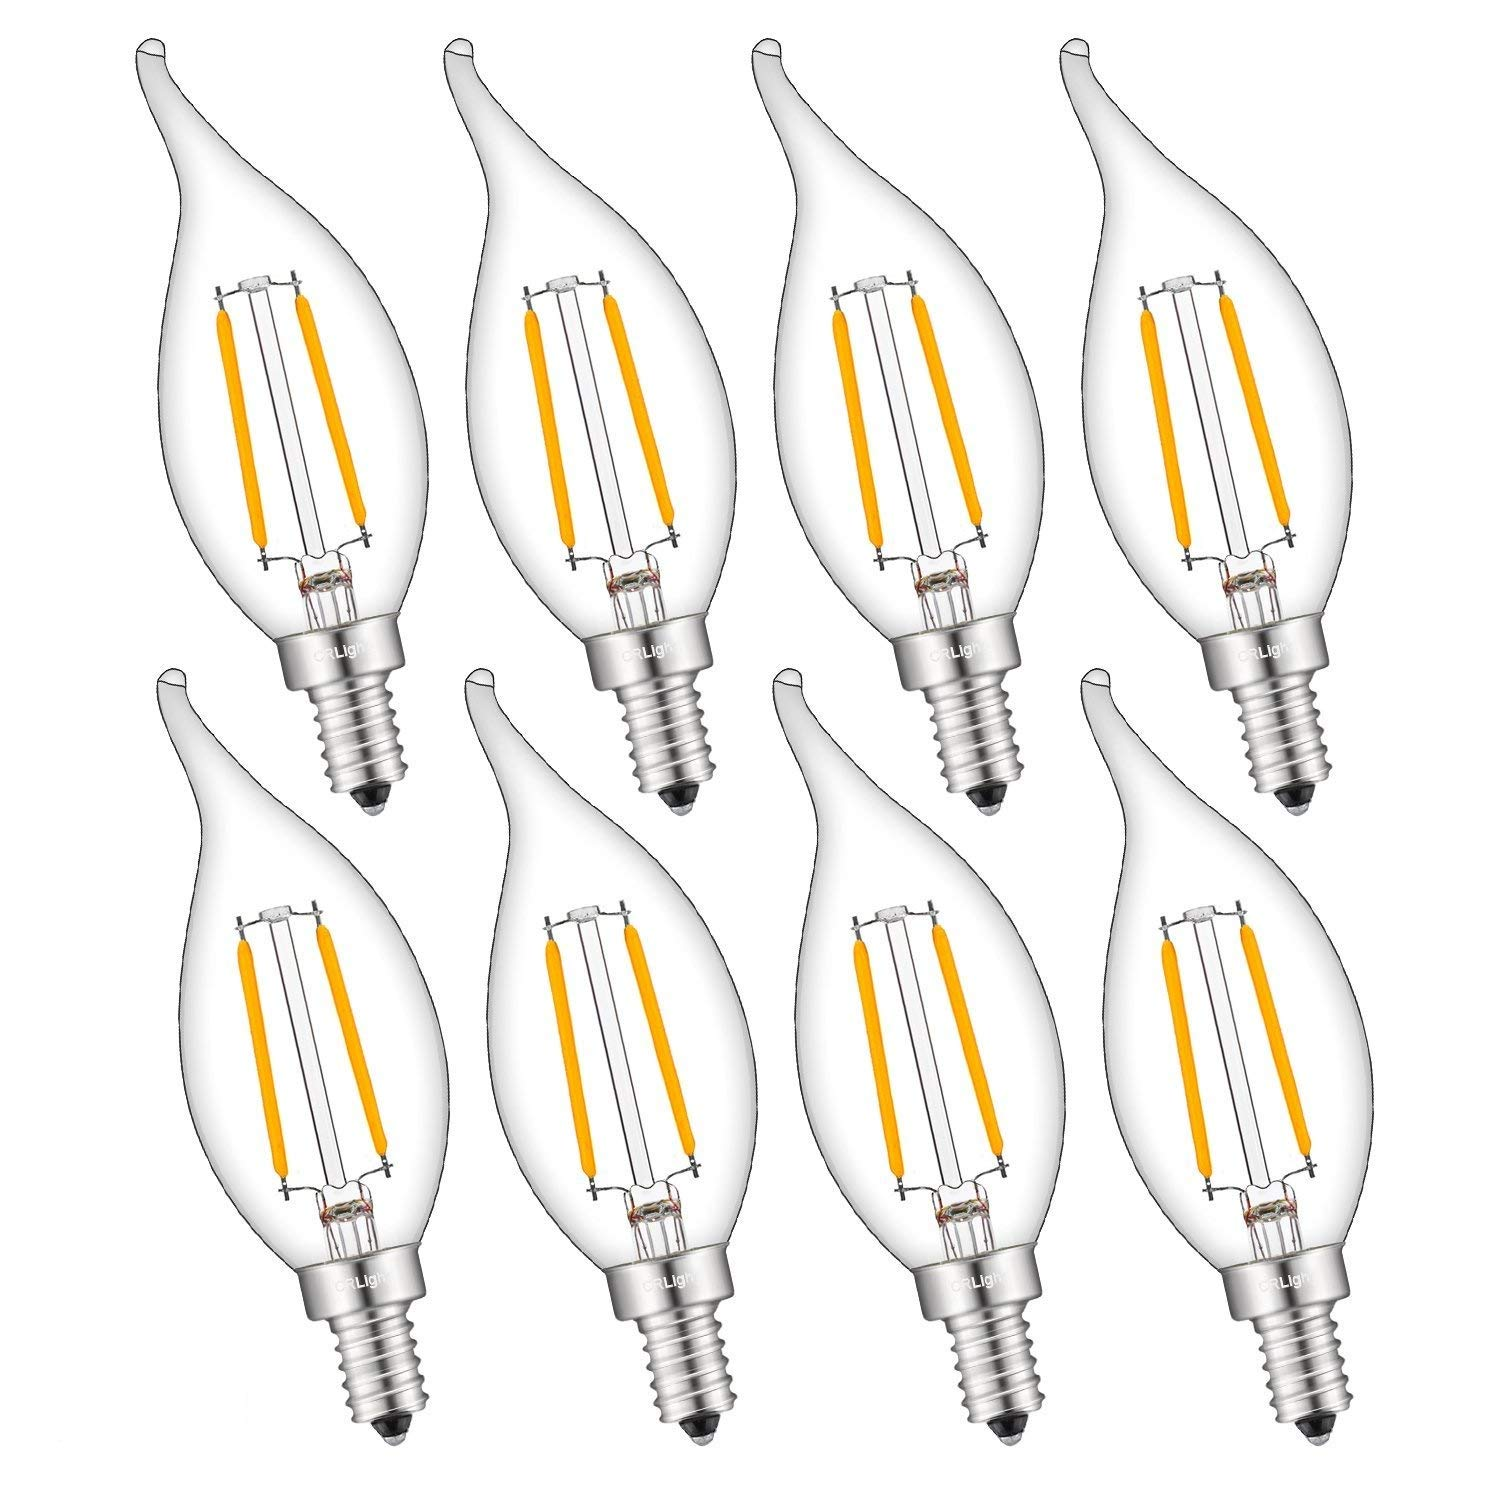 CRLight 2W 250LM Dimmable LED Candelabra Bulb 2500K Warm White, 25W Equivalent E12 Base LED Candle Bulbs, Antique CA11 Flame Shape Clear Glass Chandelier Light Bulbs, Pack of 8